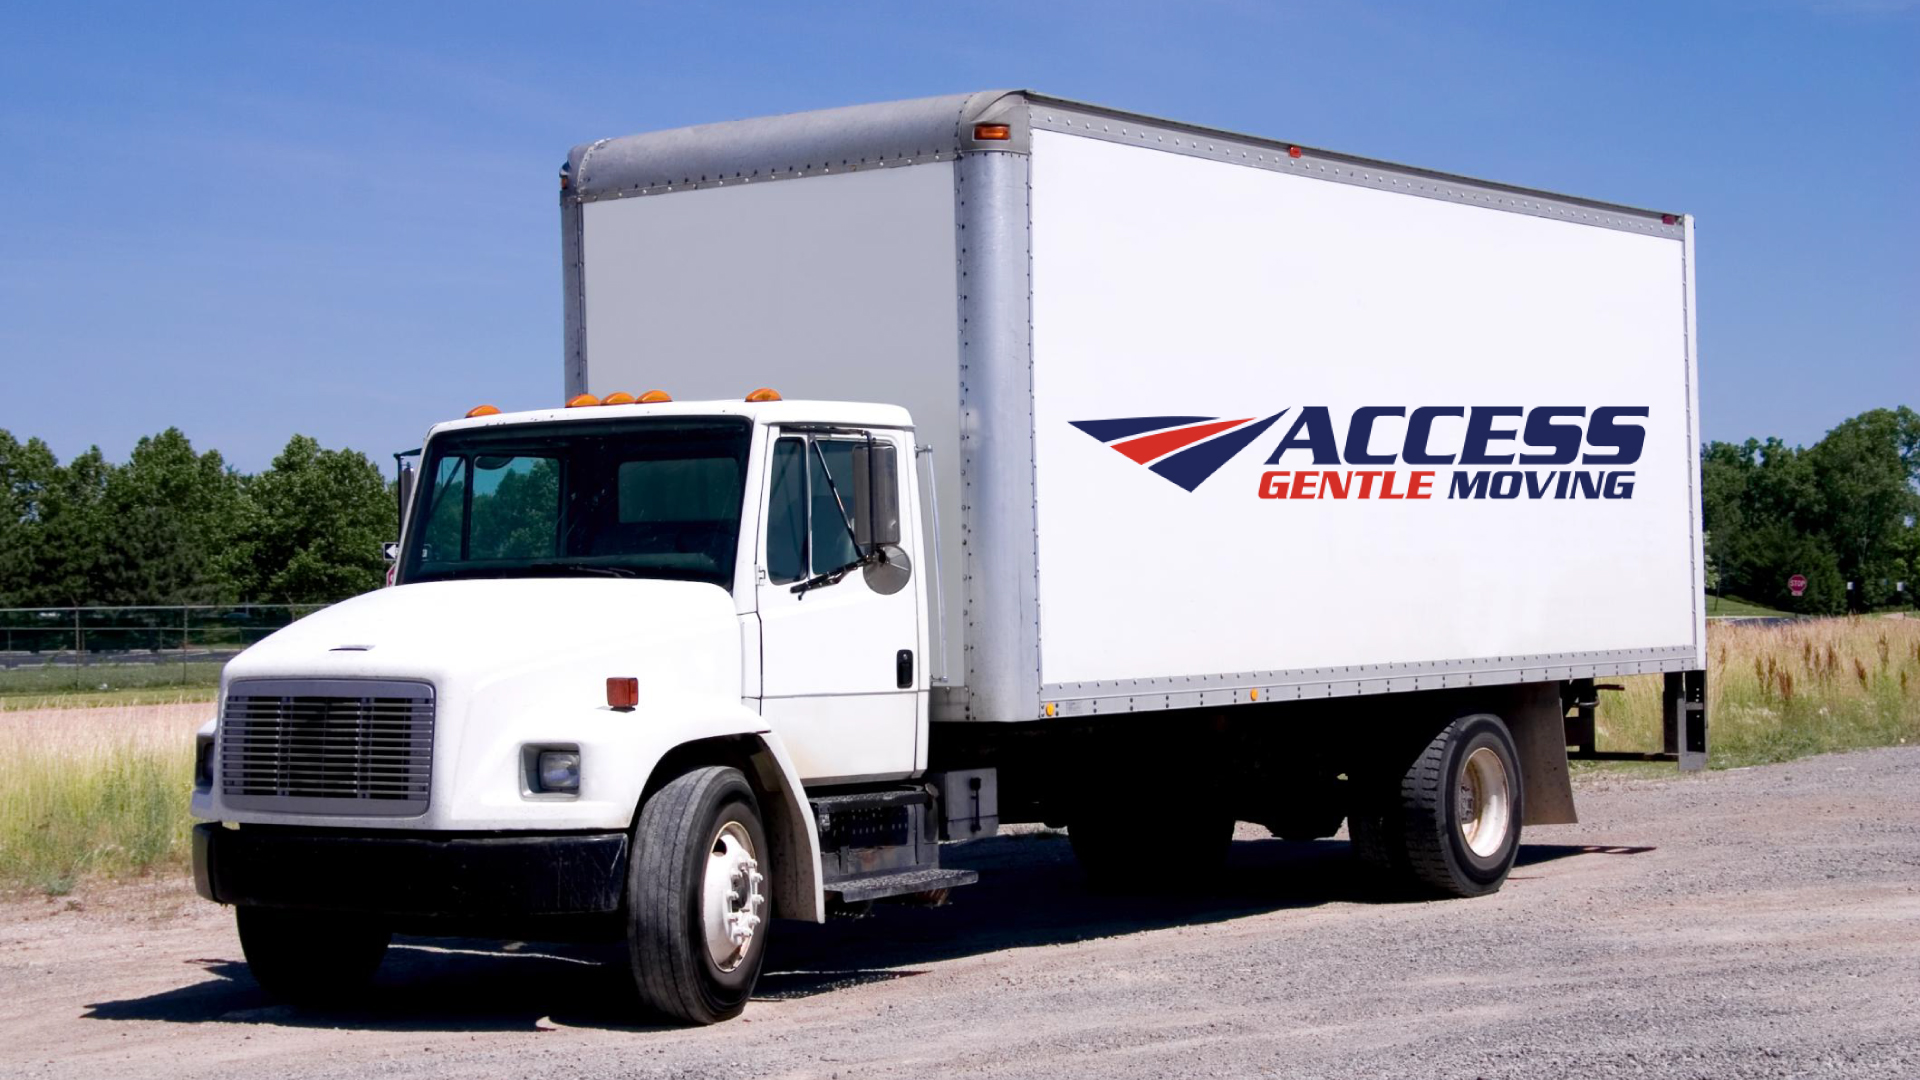 Access Gentle Moving truck